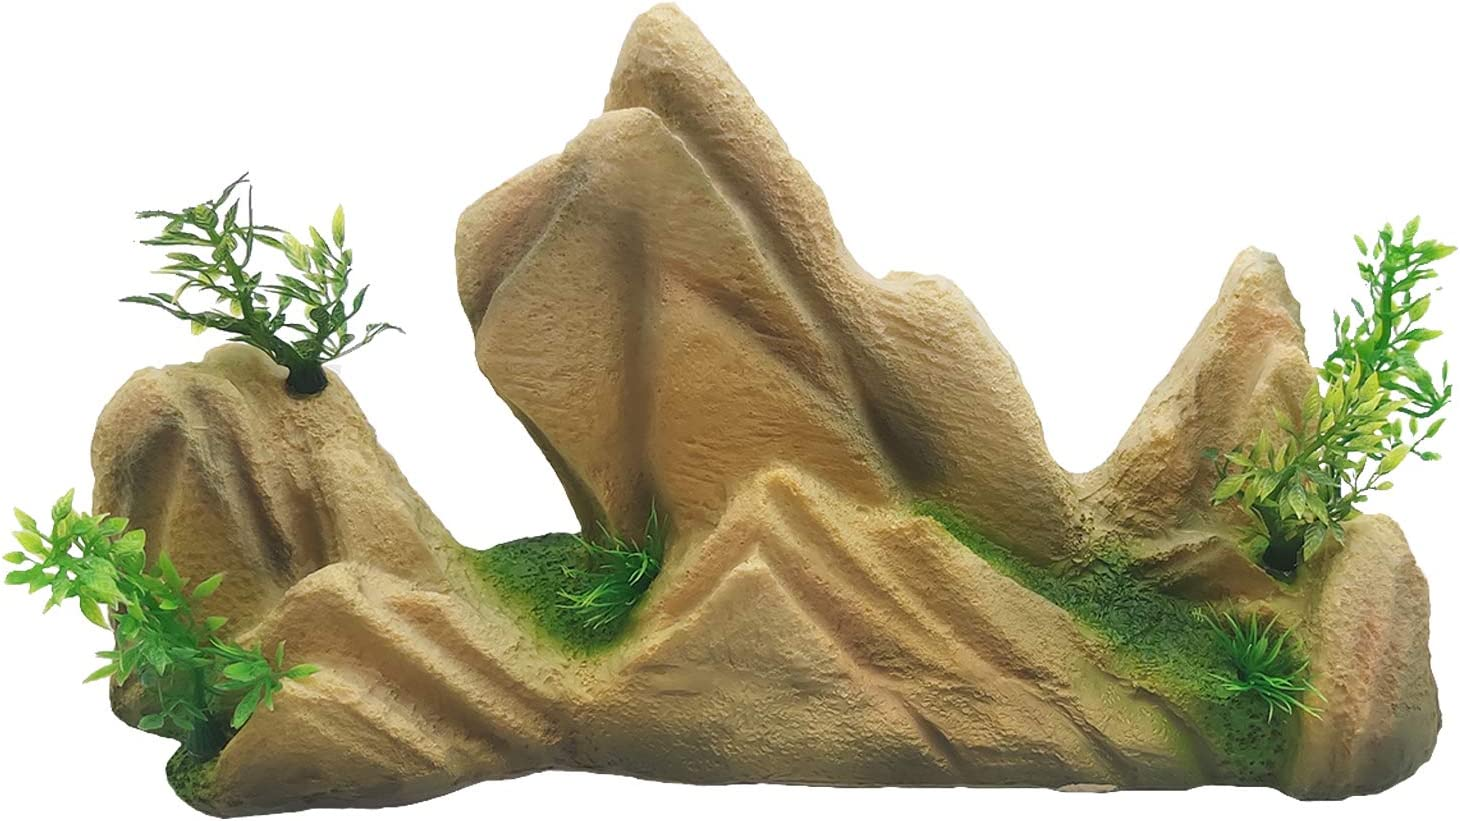 Hamiledyi Aquarium Mountain View Ornament Decorations Rock Stone Cave Landscape Artificial Resin with Plants Grass for Fish Tank